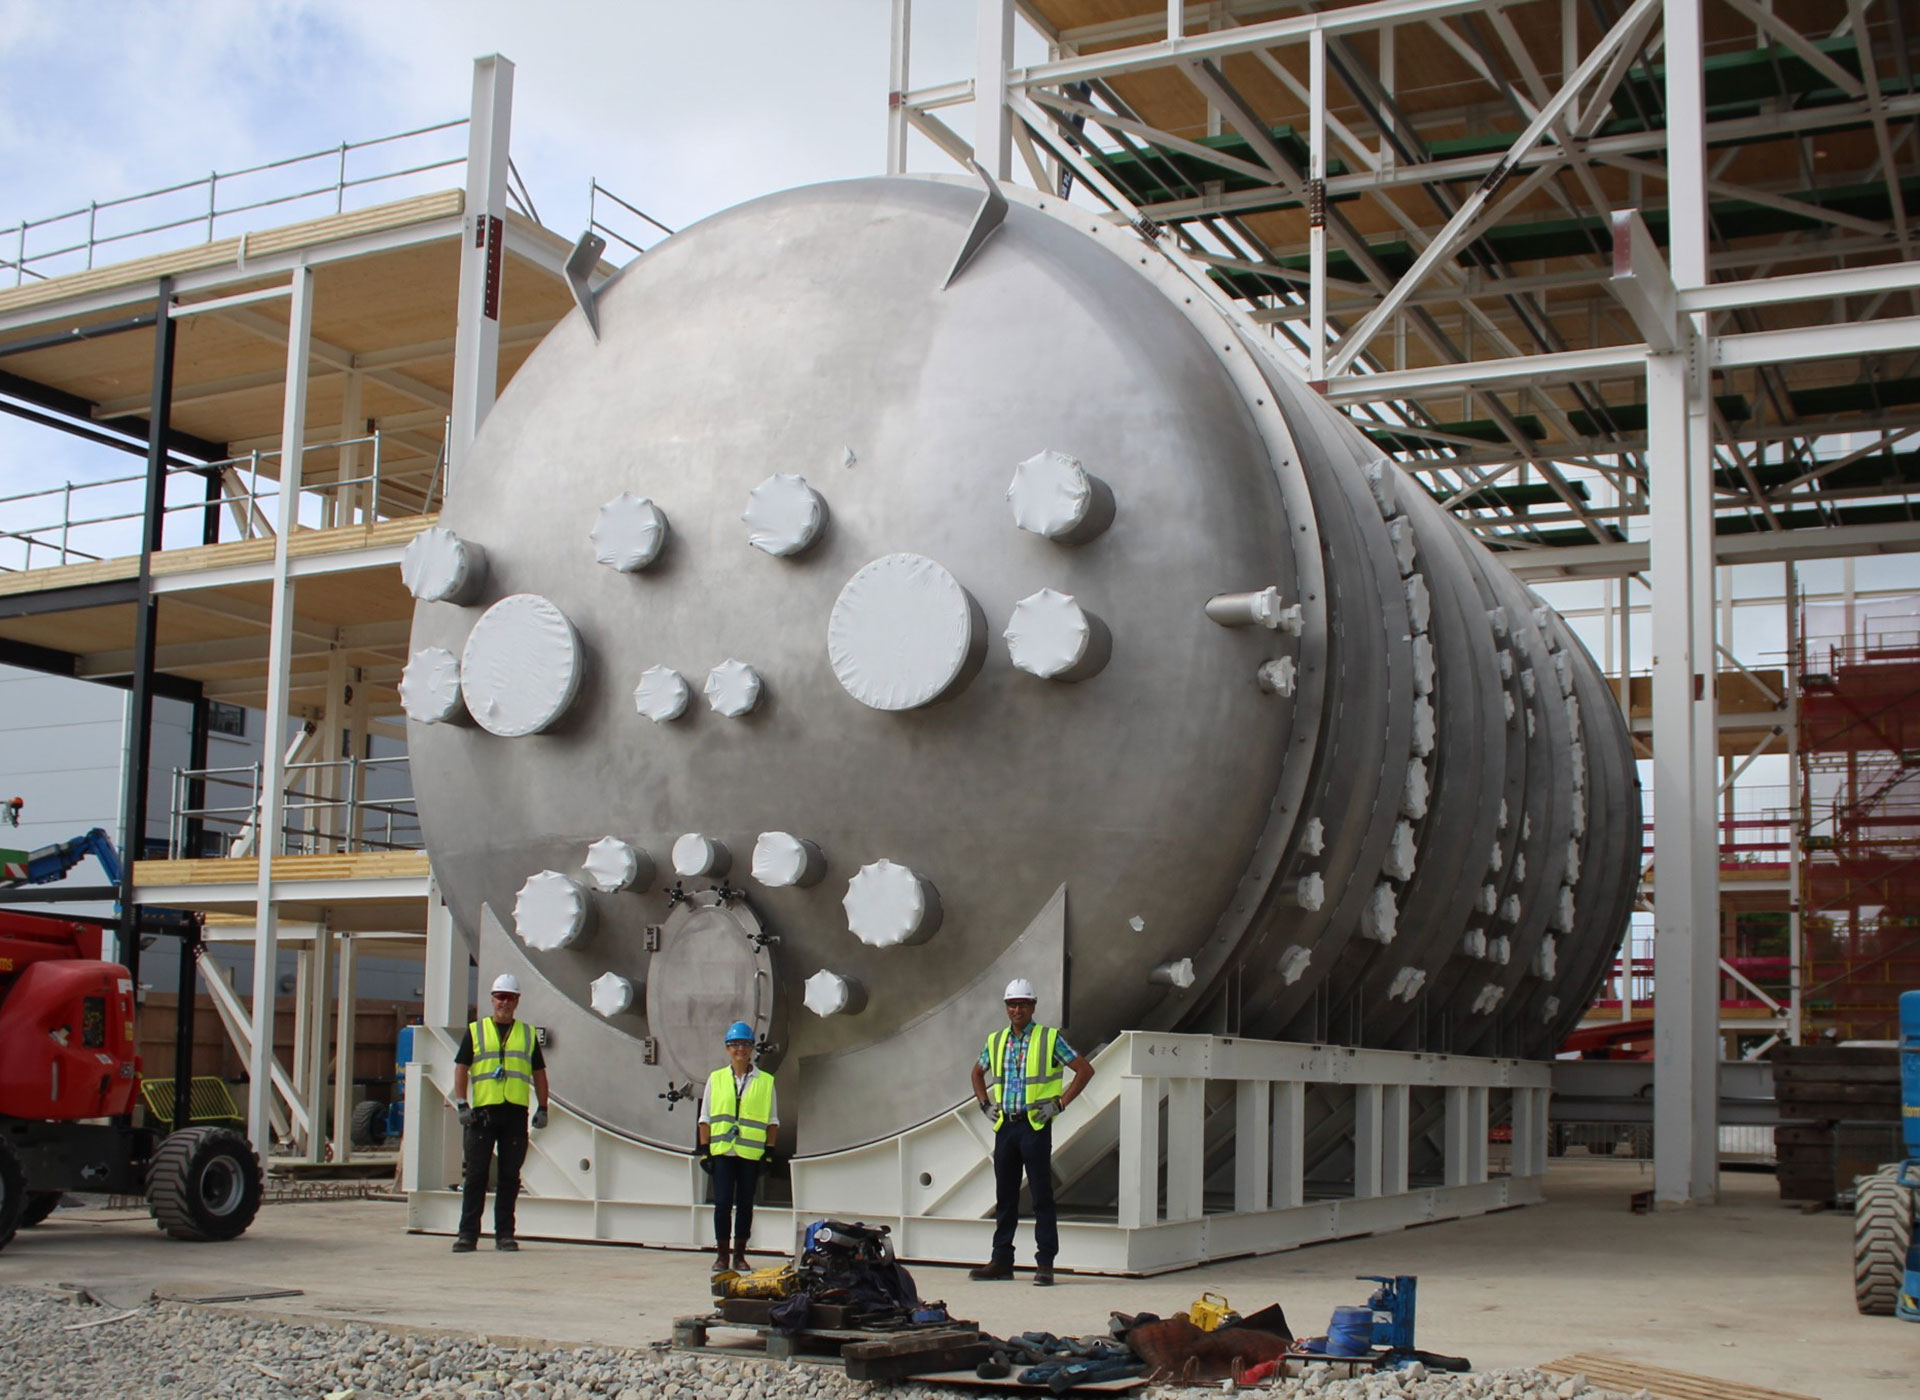 Large Space Test Chamber makes 5,800km journey to boost UK space industry